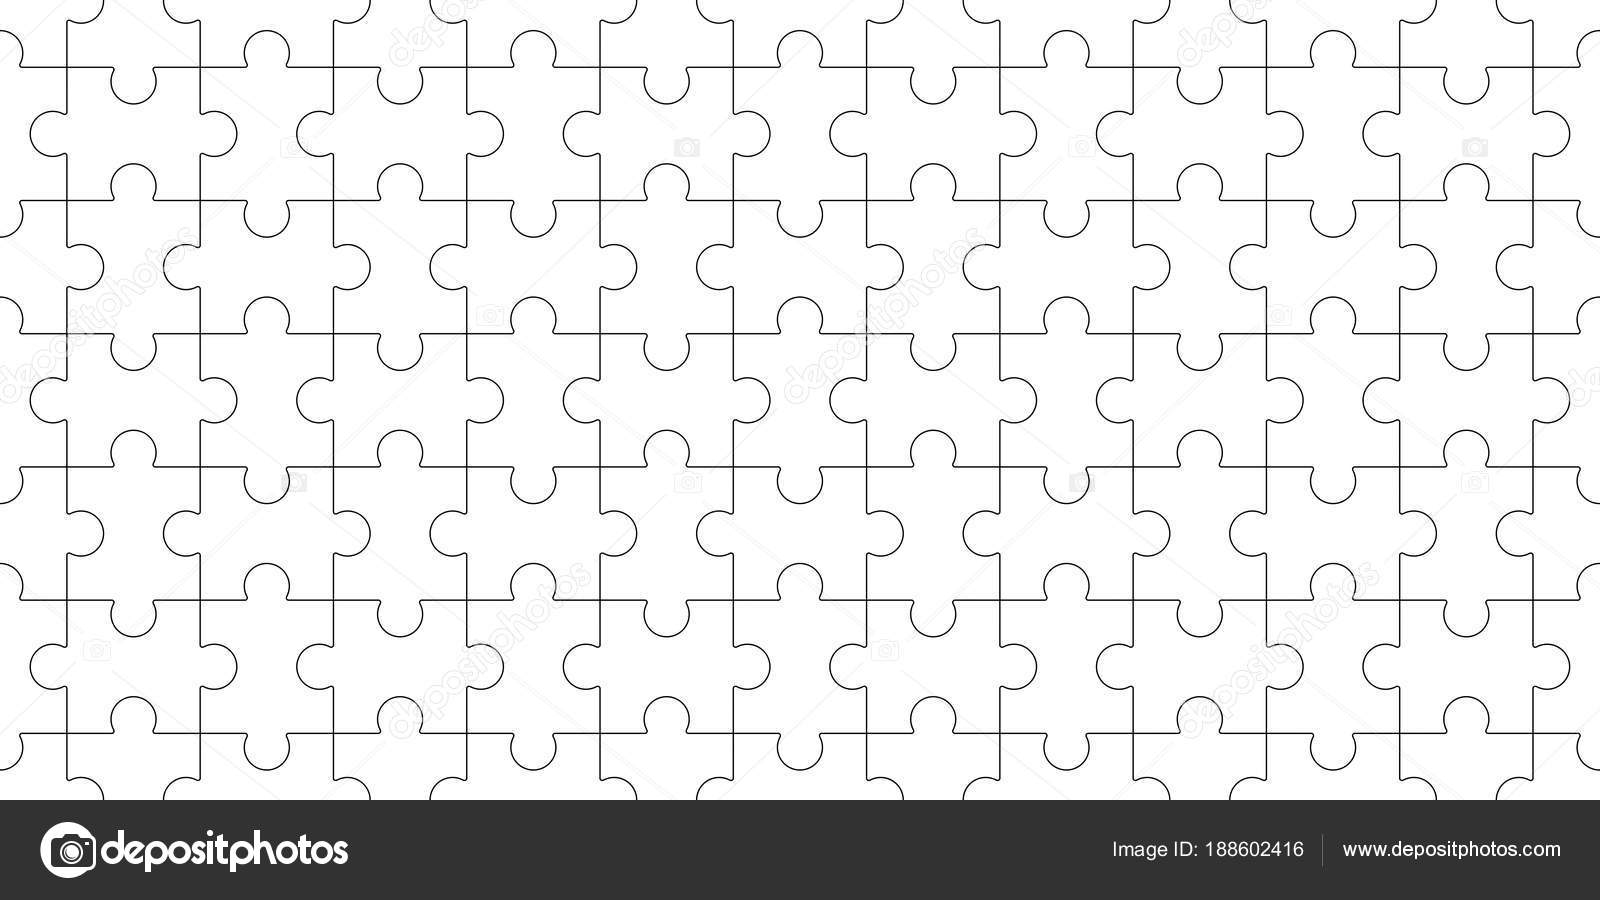 Jigsaw Puzzle Blank Template Seamless Puzzle Pattern Mosaic